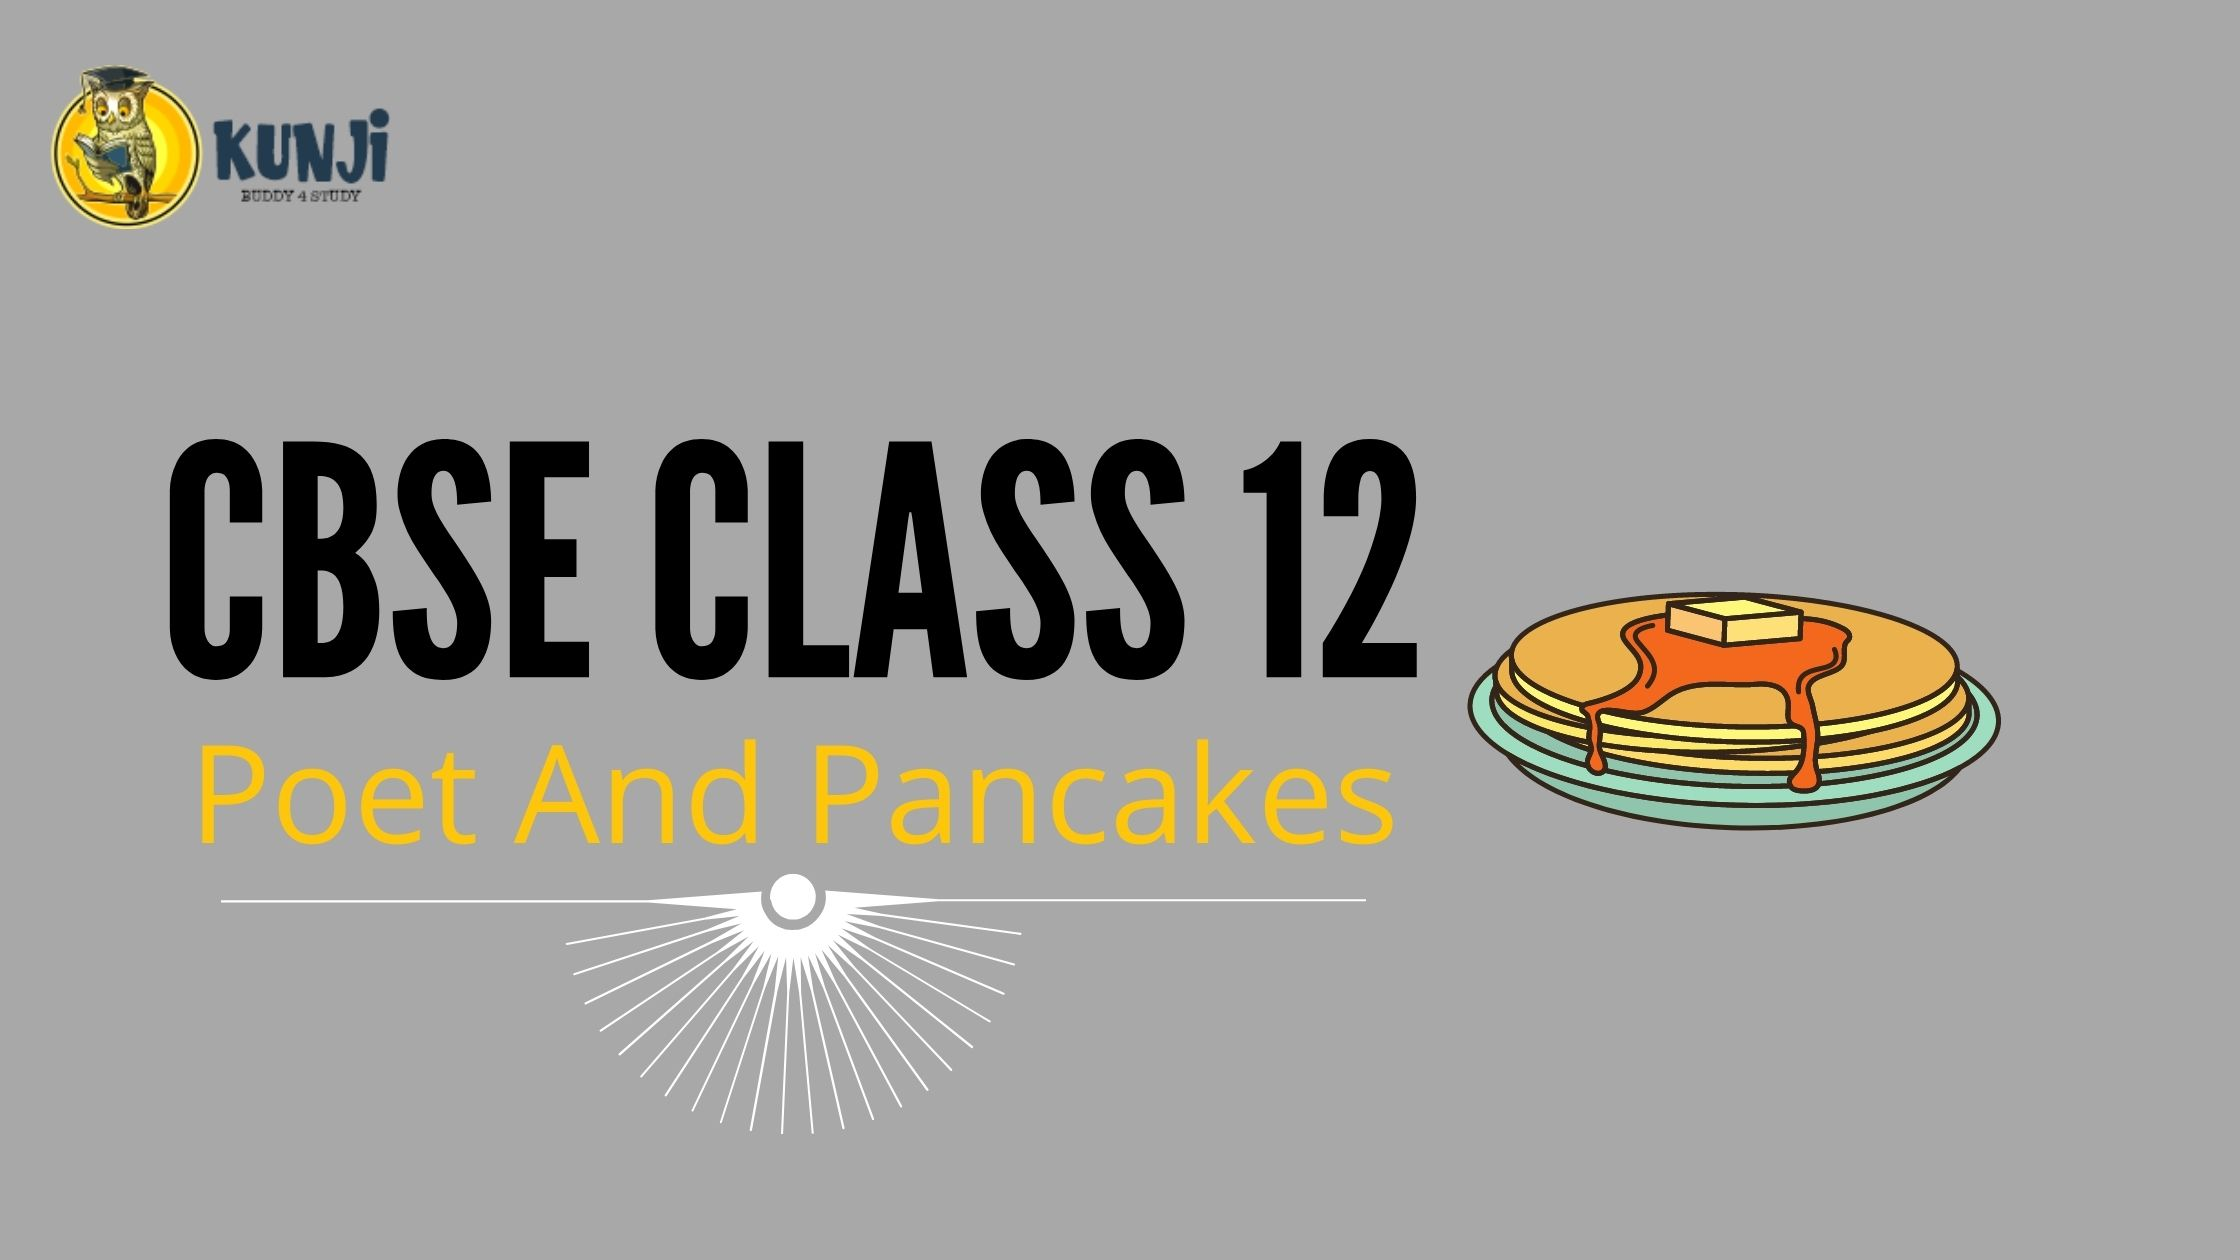 NCERT Solutions for 12th Class English Chapter 6 Poet And Pancakes